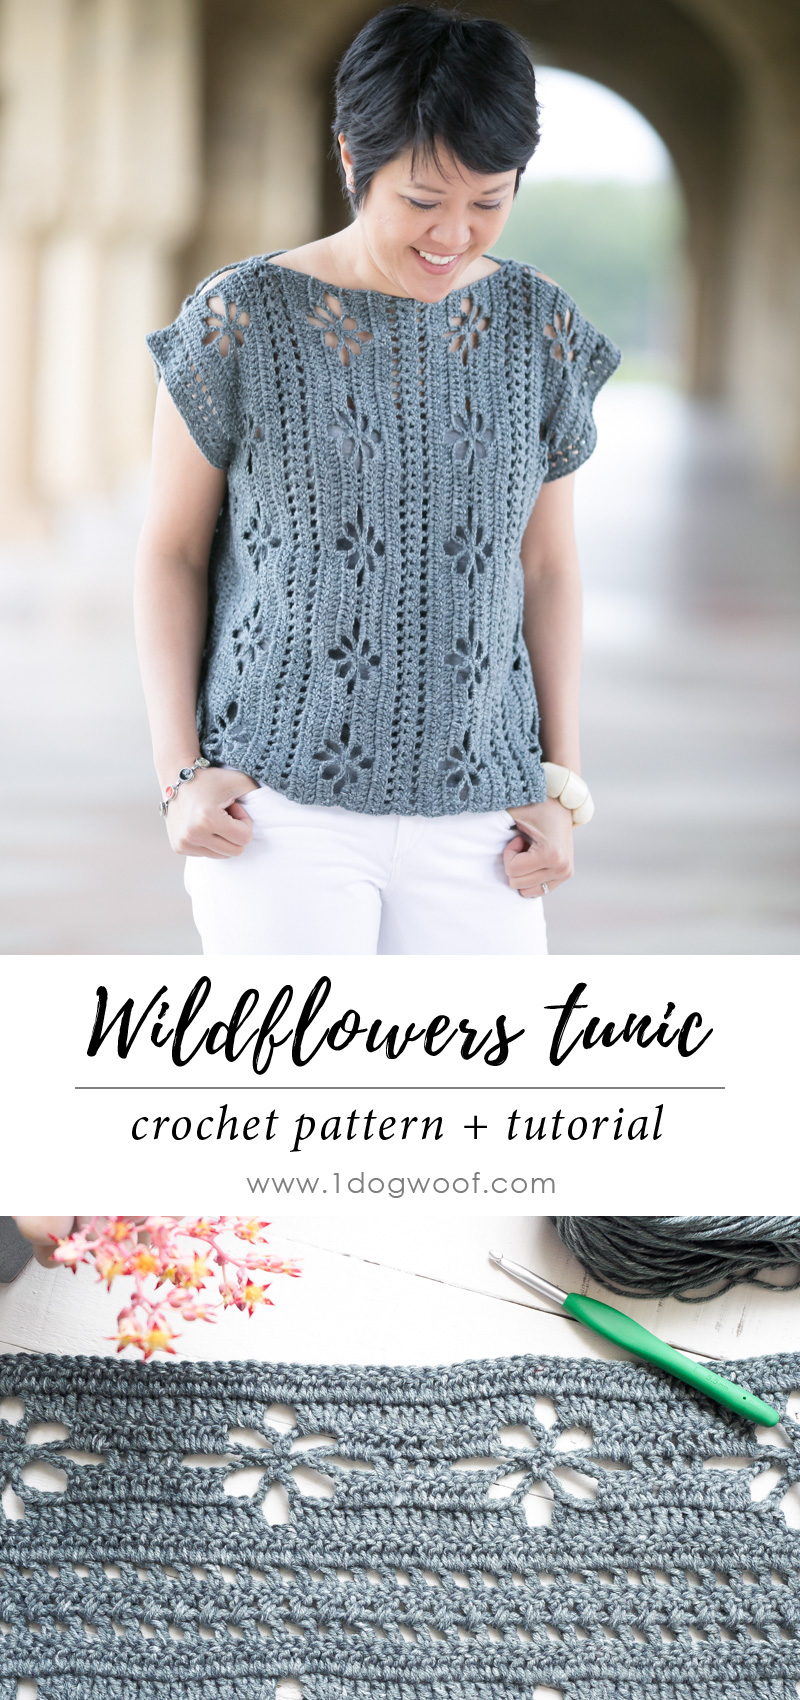 wildflowers tunic top + stitch detail pin image